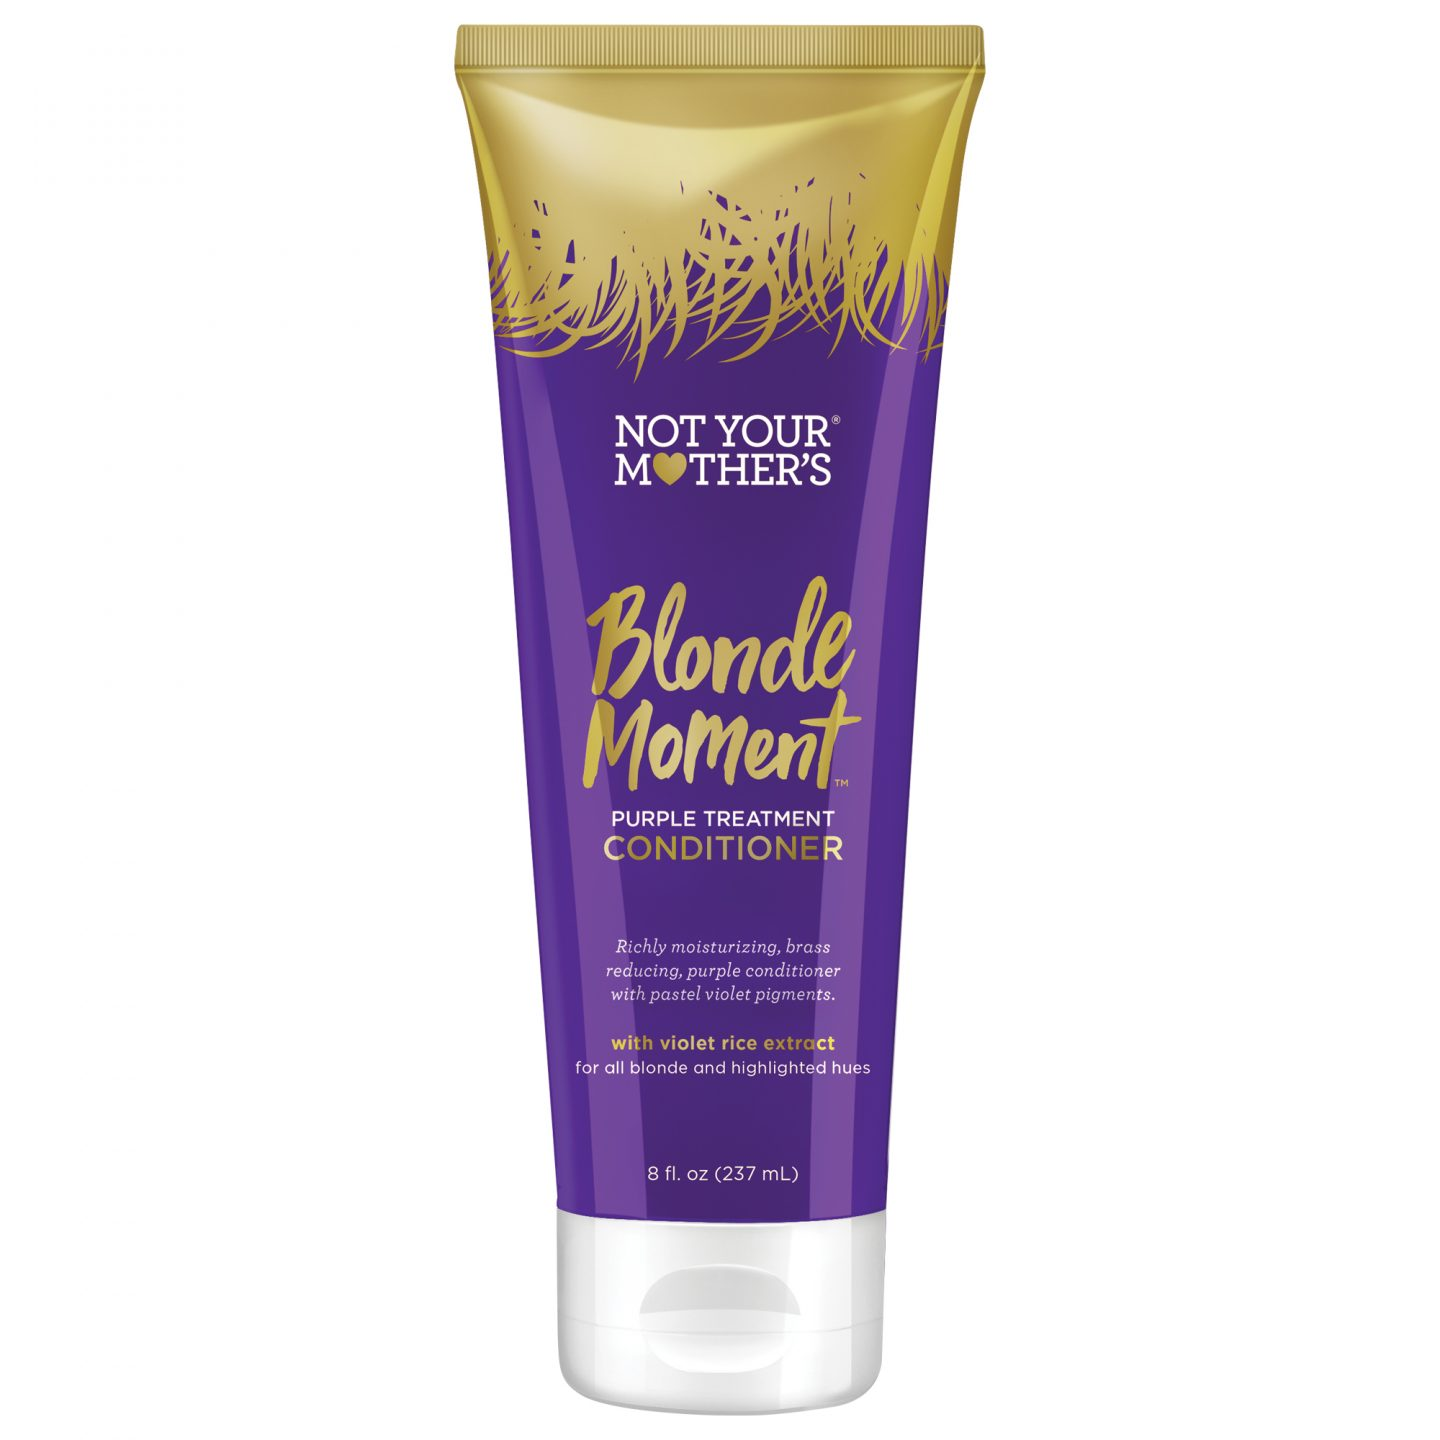 NYM blonde moment conditioner